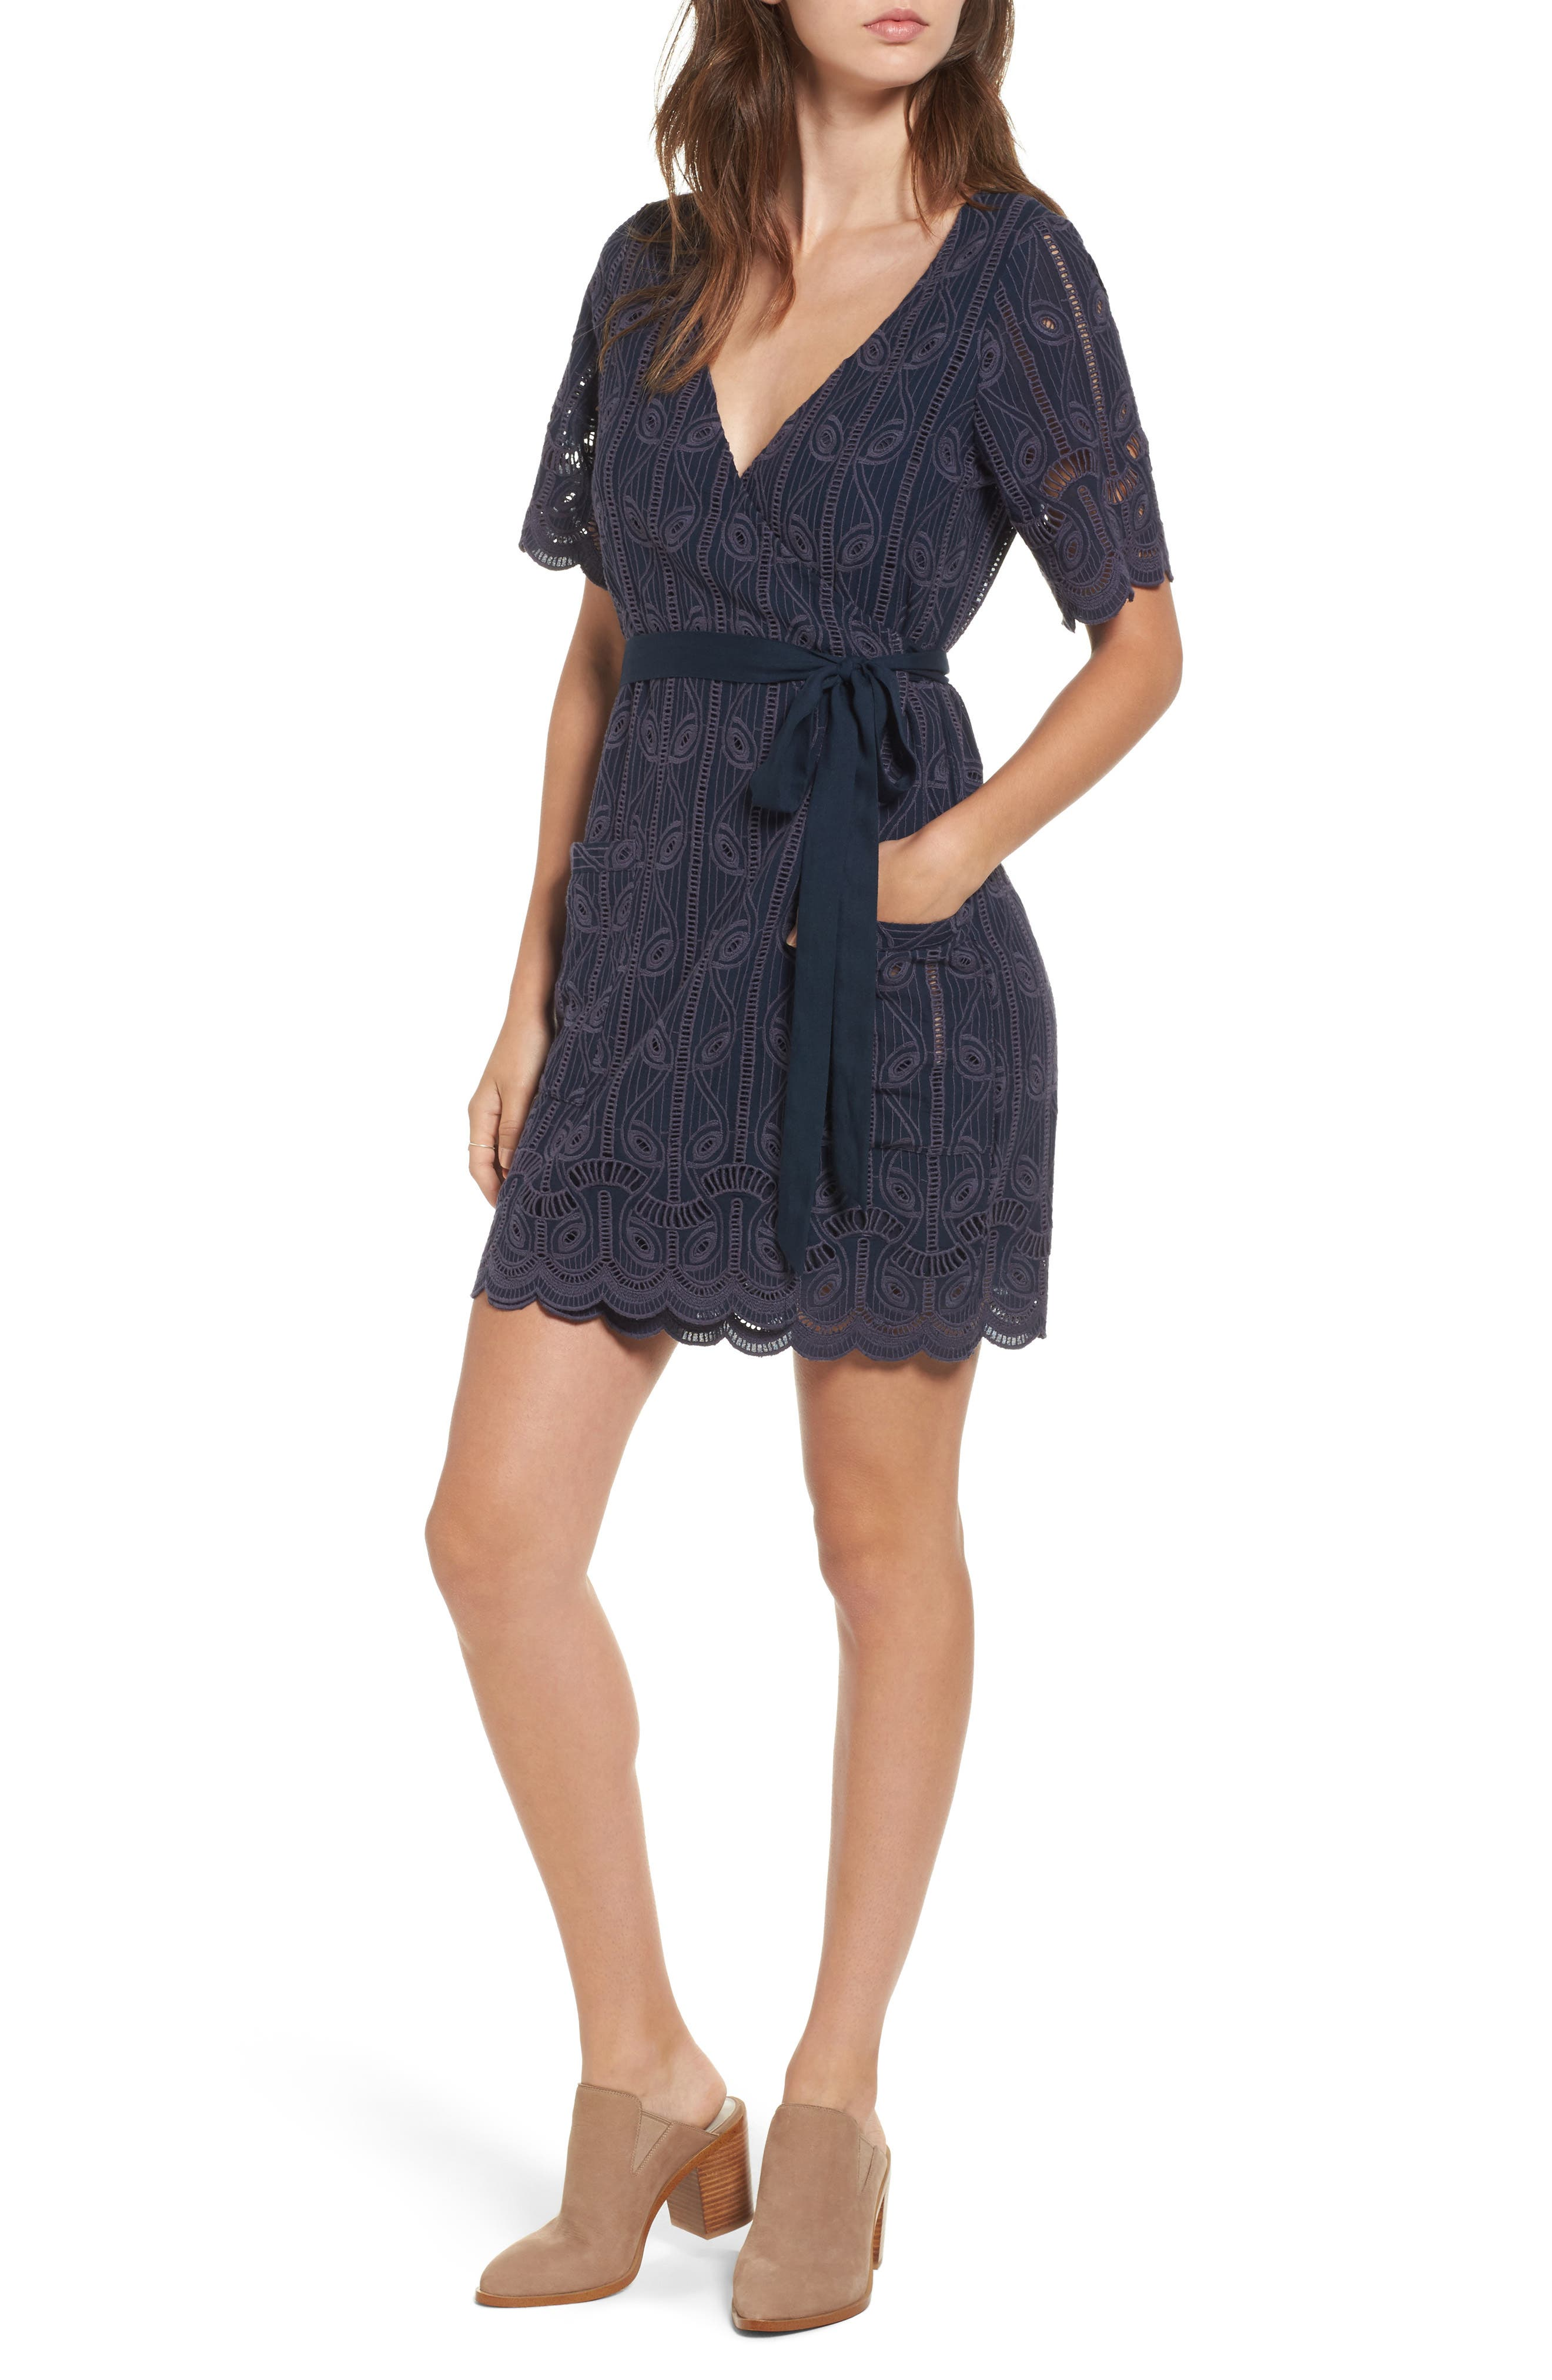 Main Image - Tularosa Rocky Cutwork Embroidery Wrap Dress